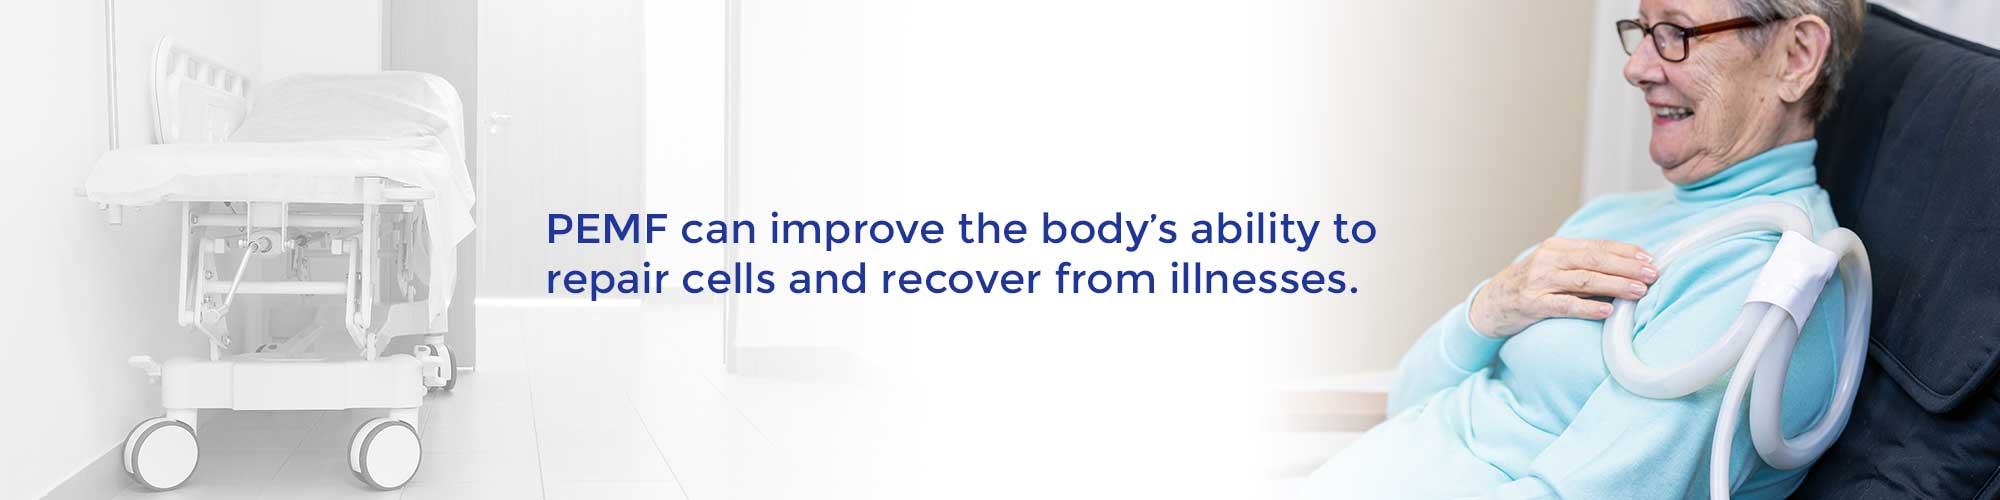 PEMF can improve the body's ability to repair cells and recover from illnesses.